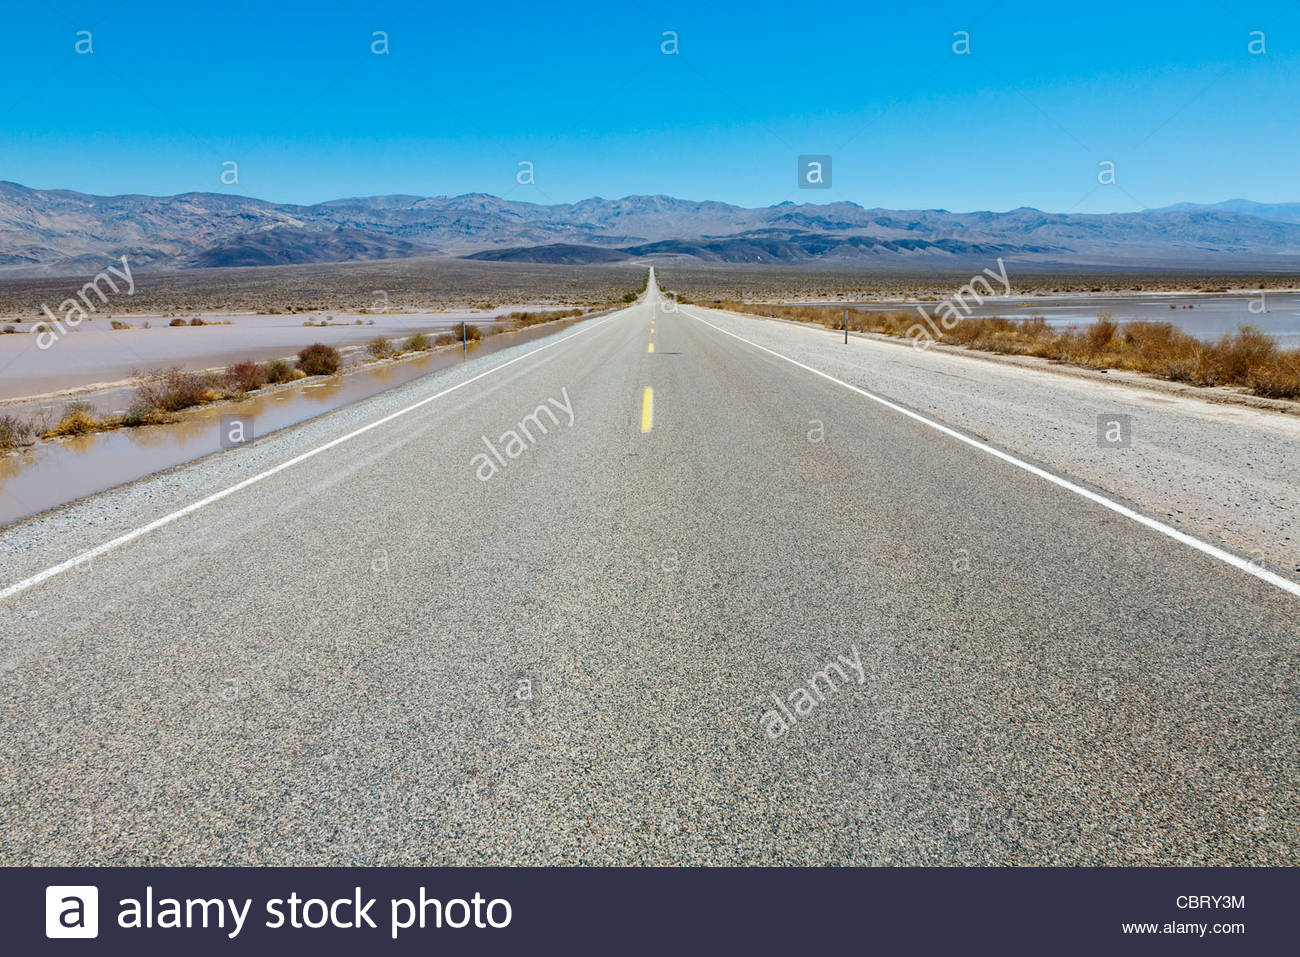 Empty desert Road stretching into the distance, Death Valley National Park, California, United States - Stock Image